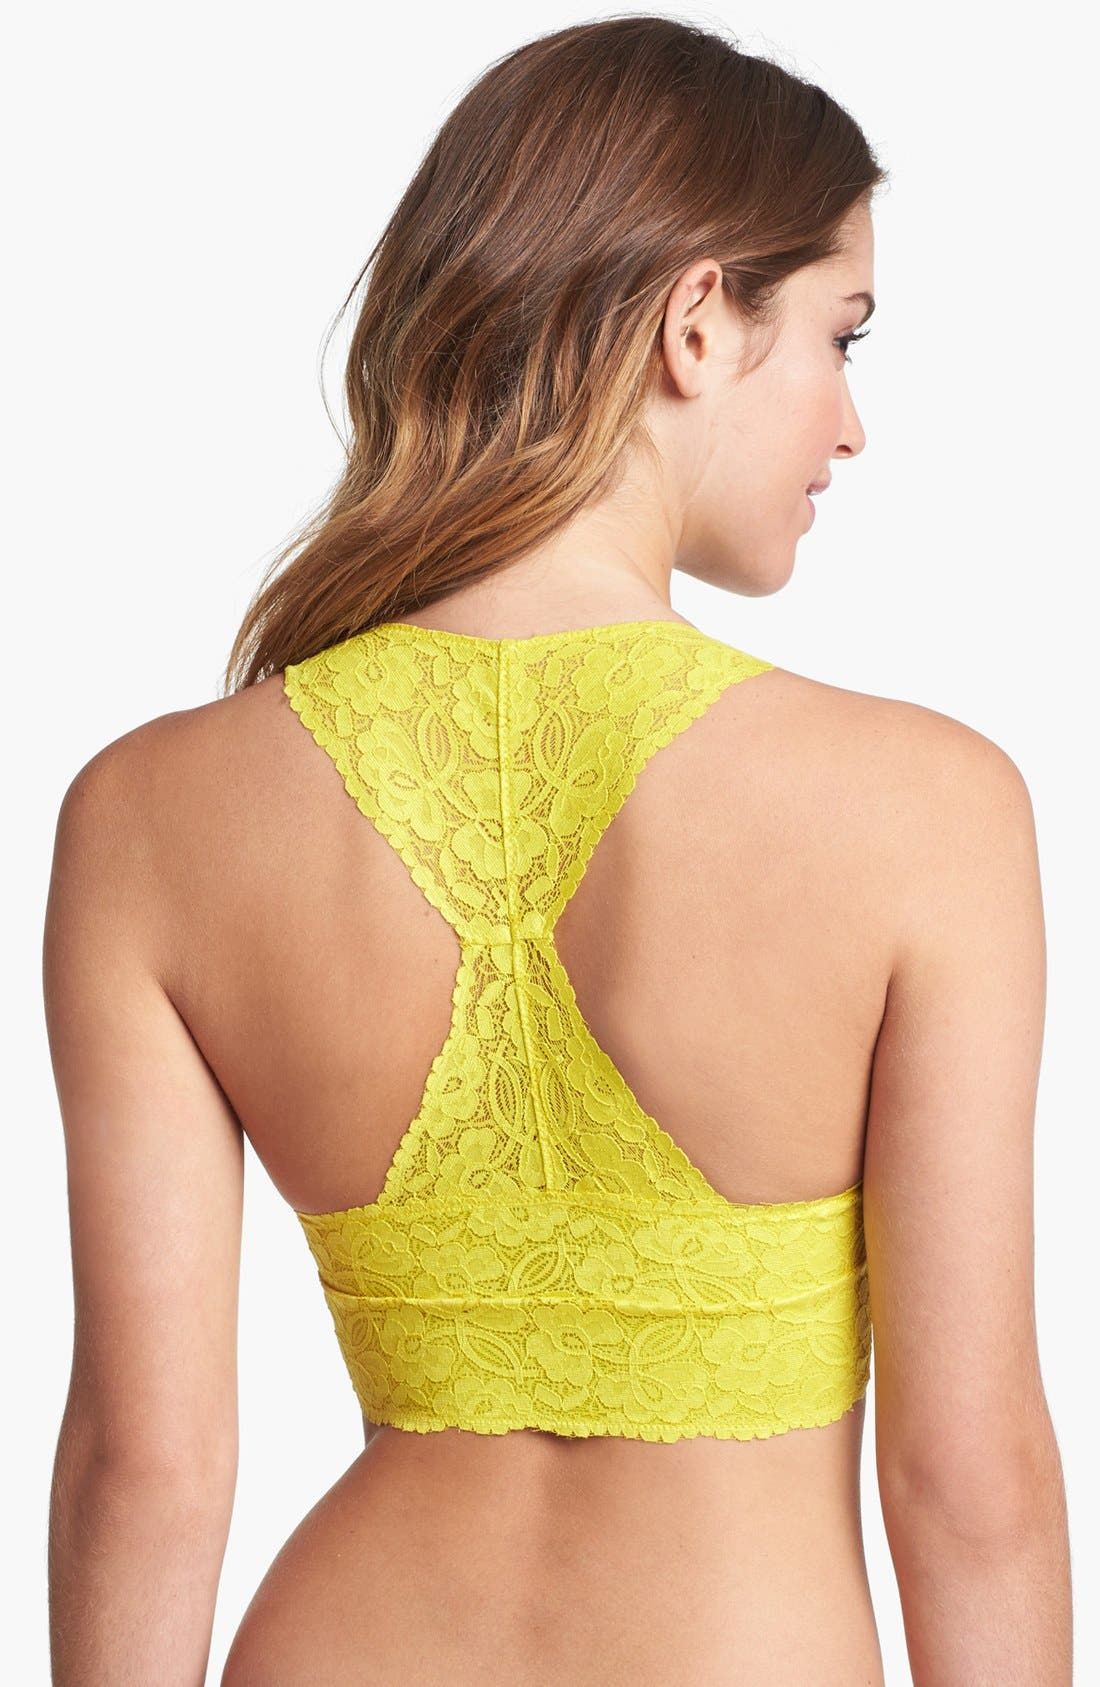 Racerback Galloon Lace Bralette,                             Alternate thumbnail 91, color,